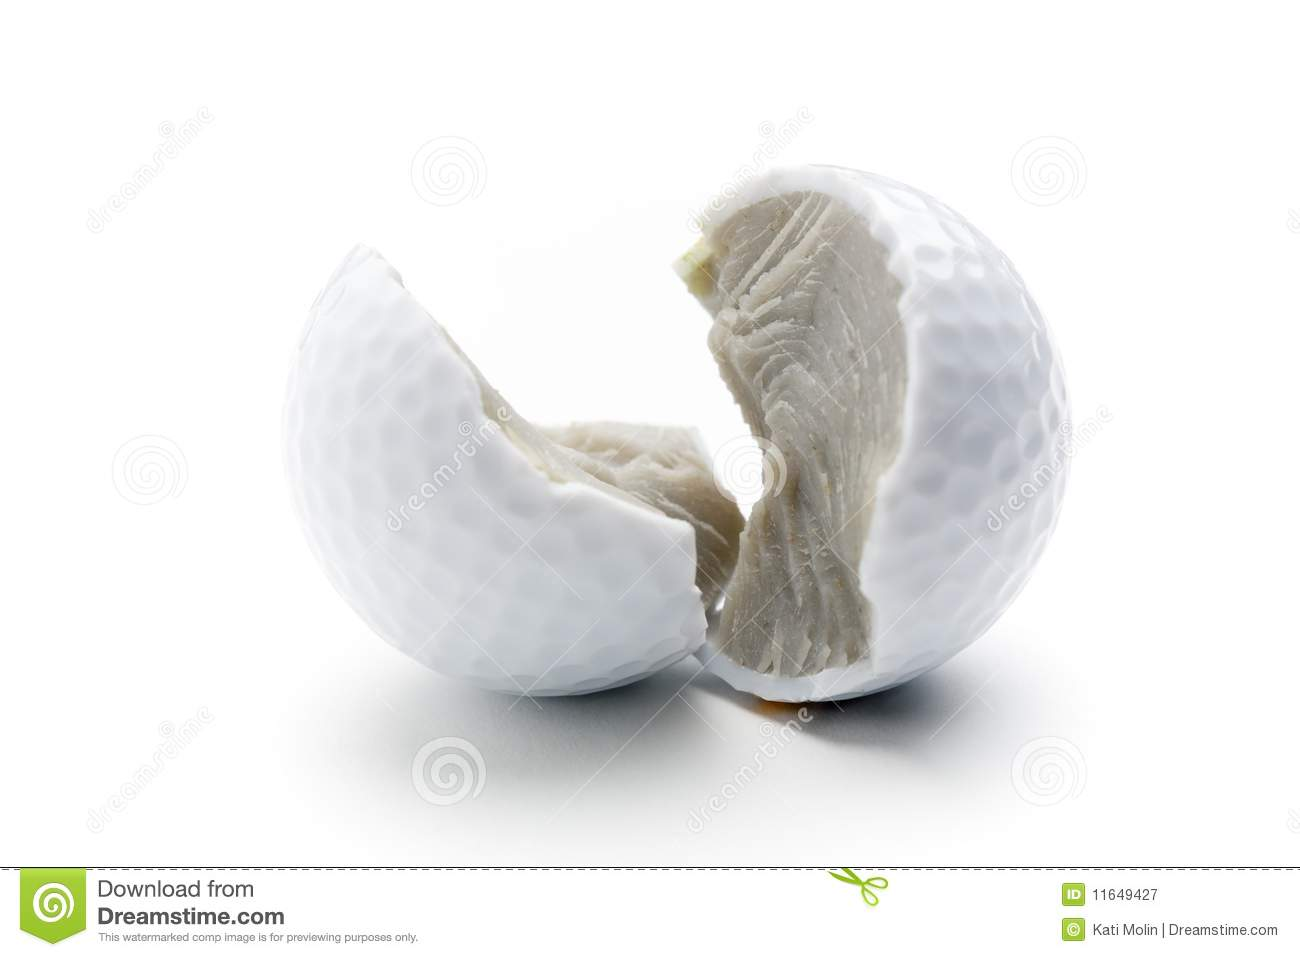 Broken Golf Ball Royalty Free Stock Photography - Image: 11649427